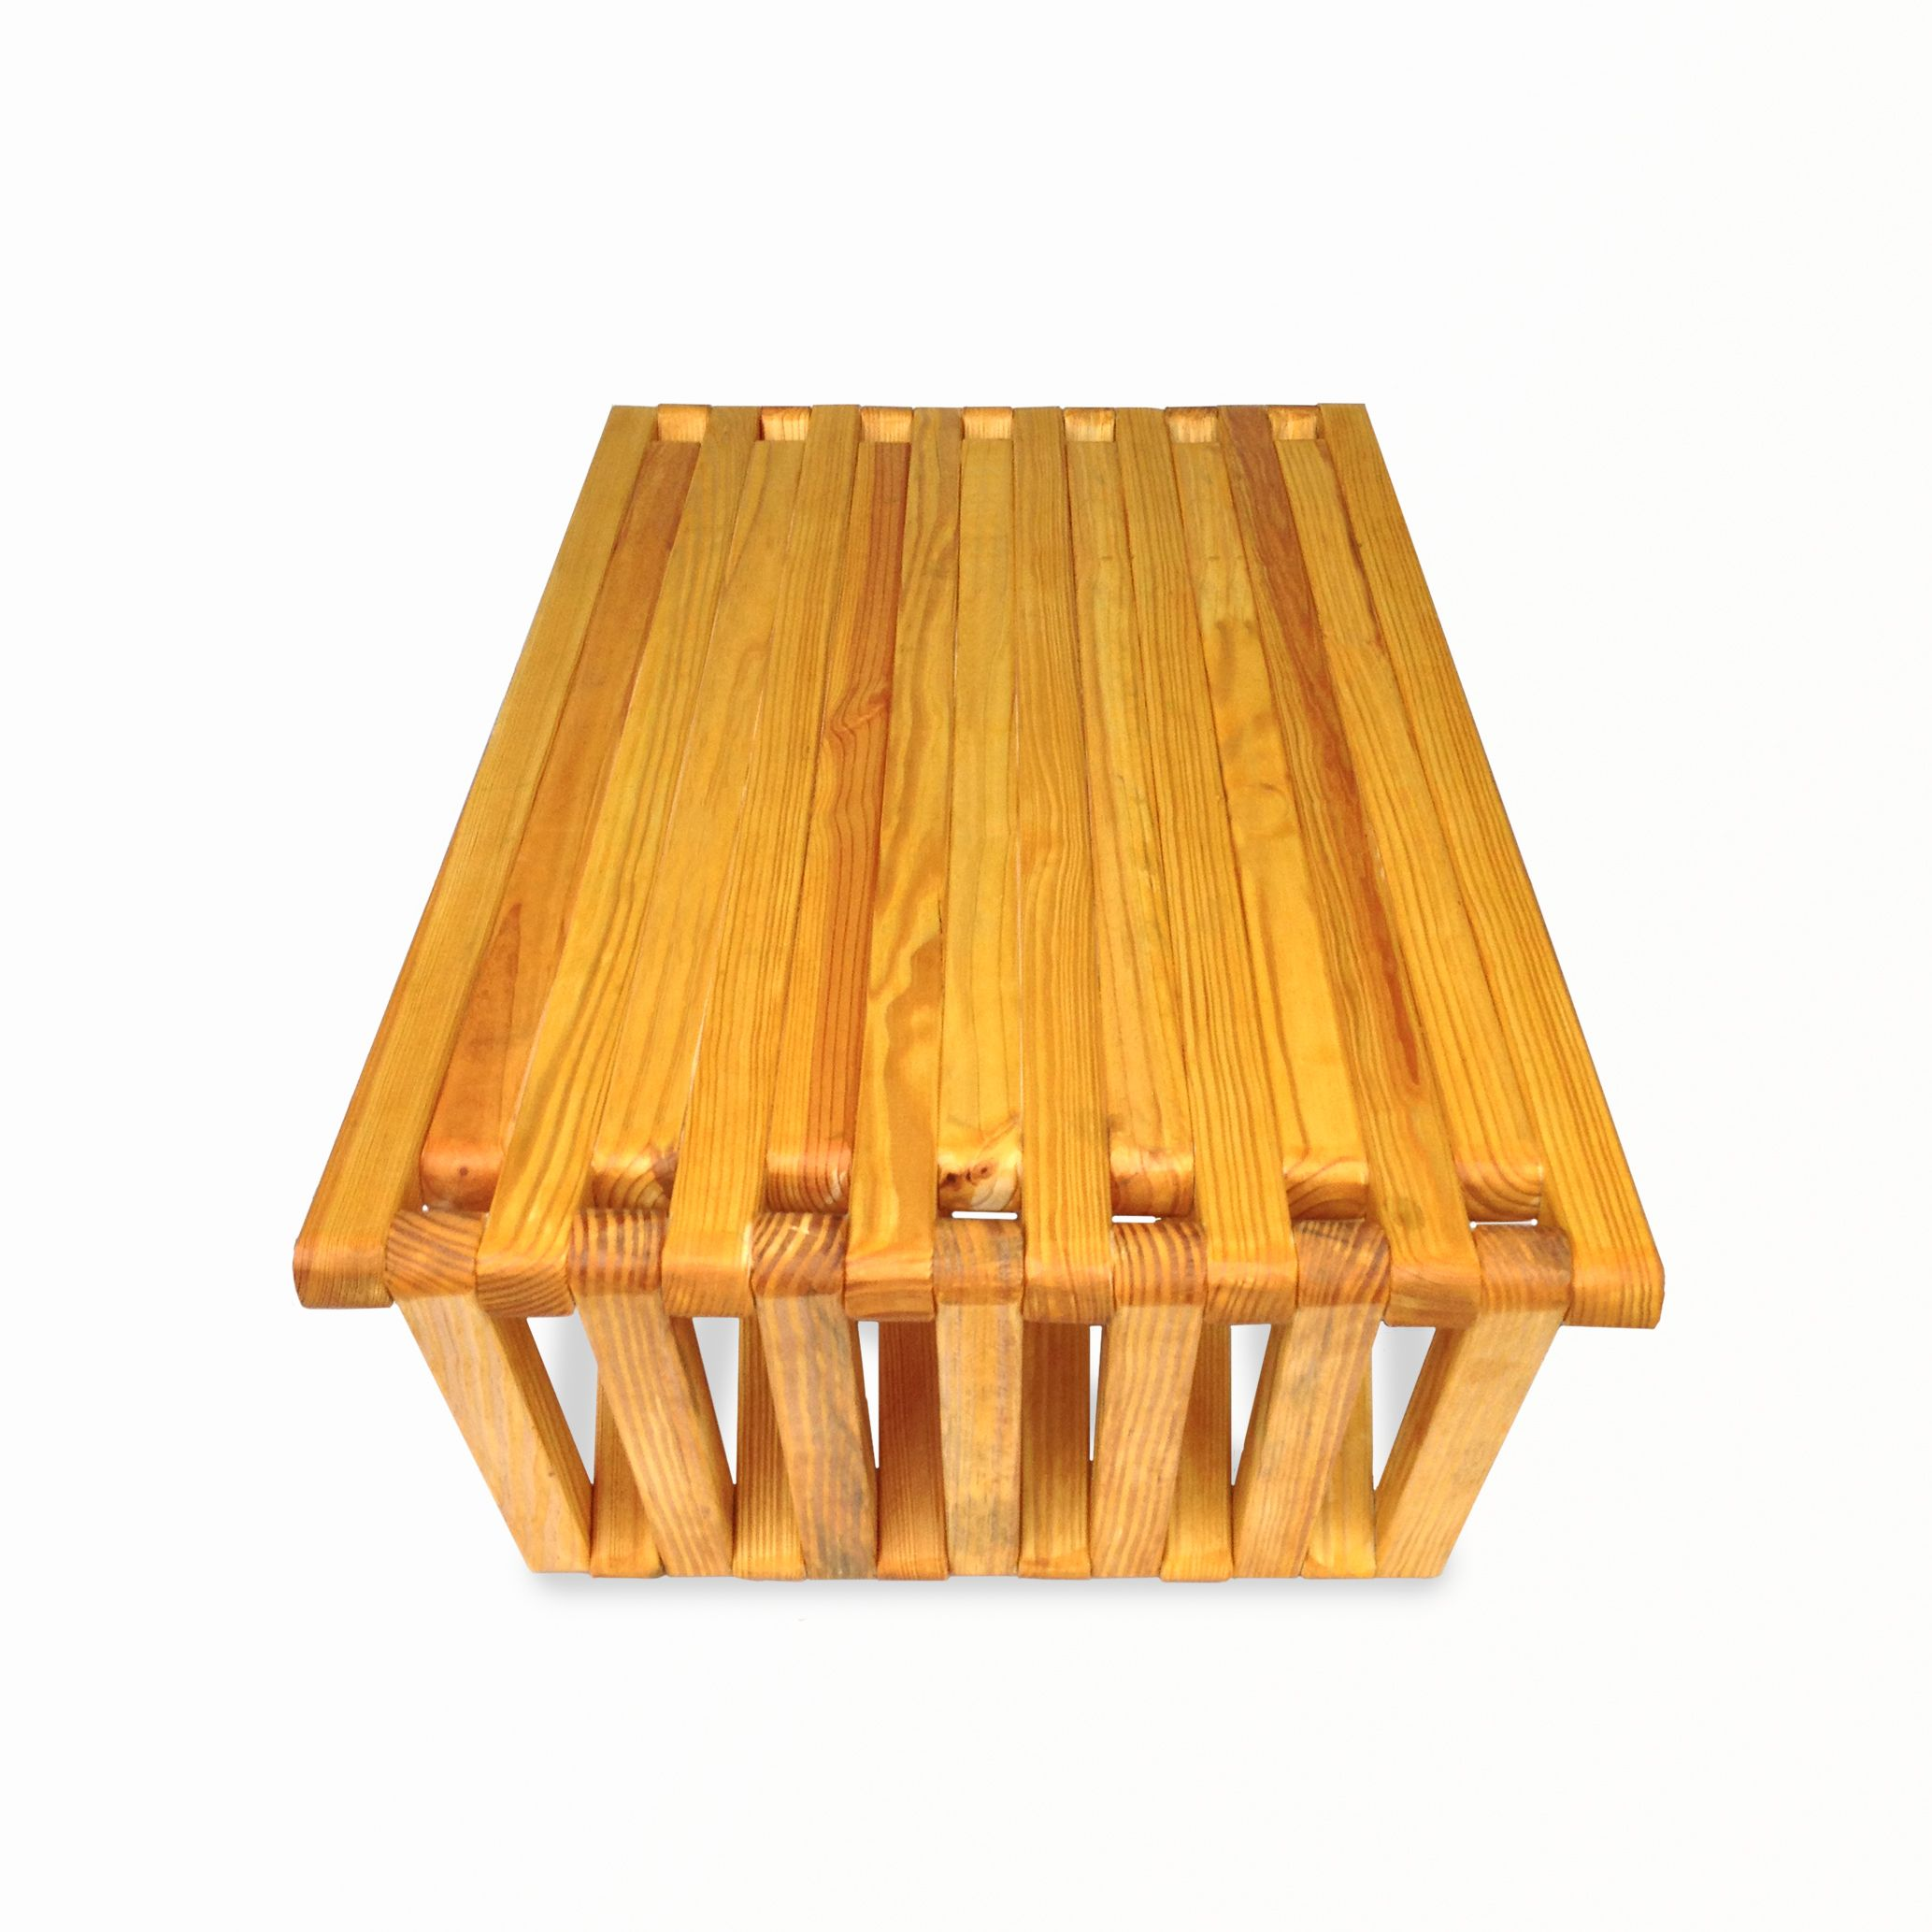 Coffee Table X36 Honey The Coffee Table X36 is casual